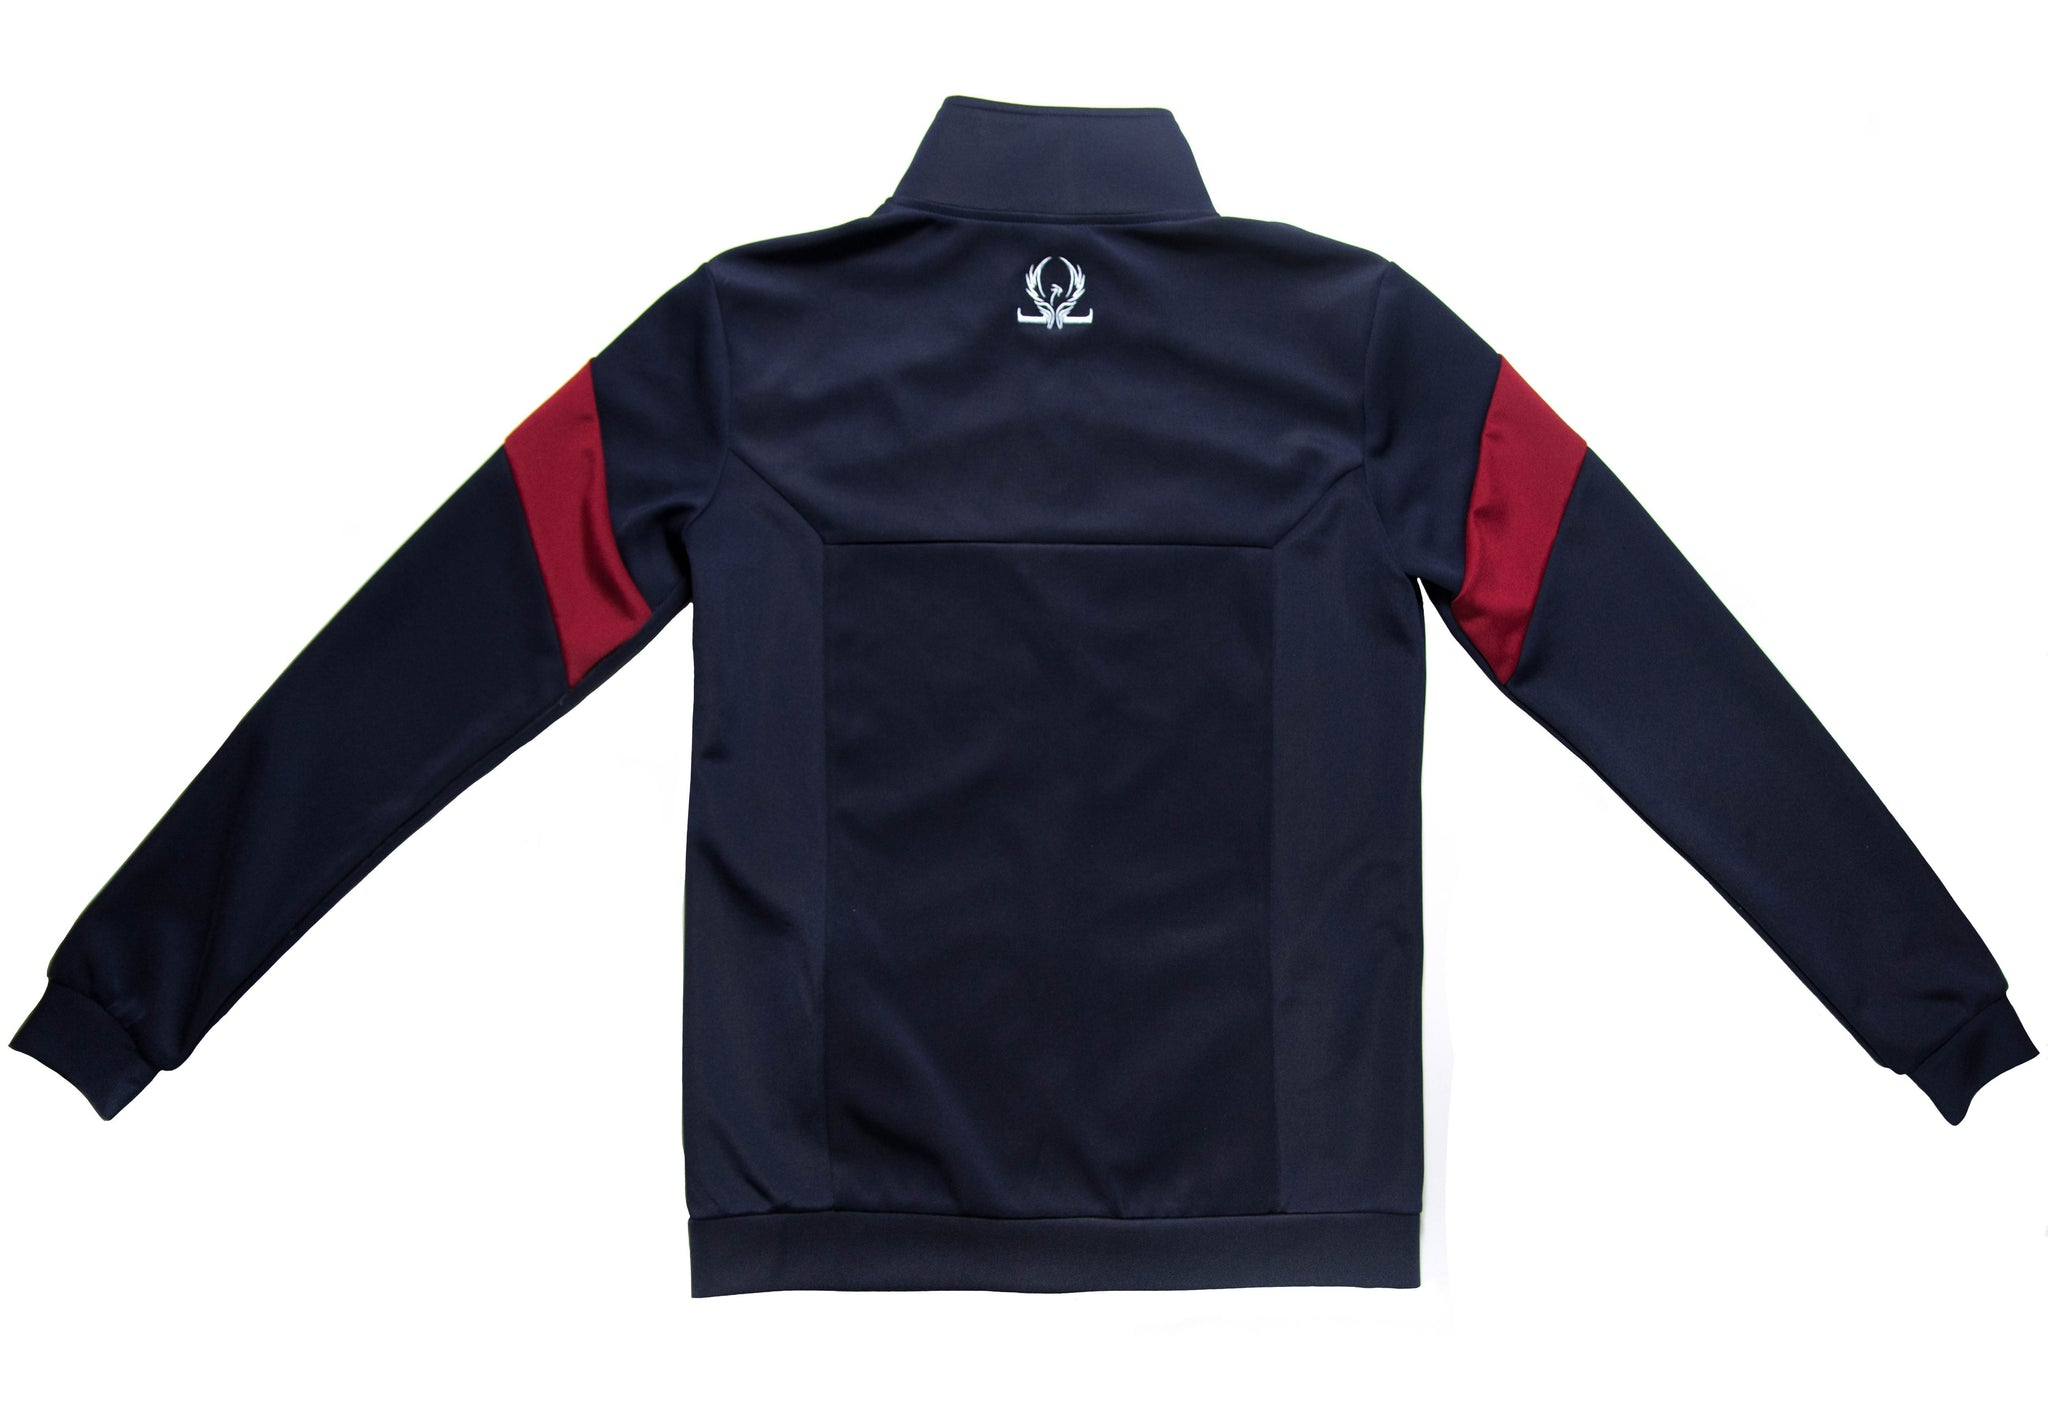 0b3d335fada Martial Arts Training Jacket - Navy Blue - Oronin Wear Martial Arts  Athletic Apparel and Supplies